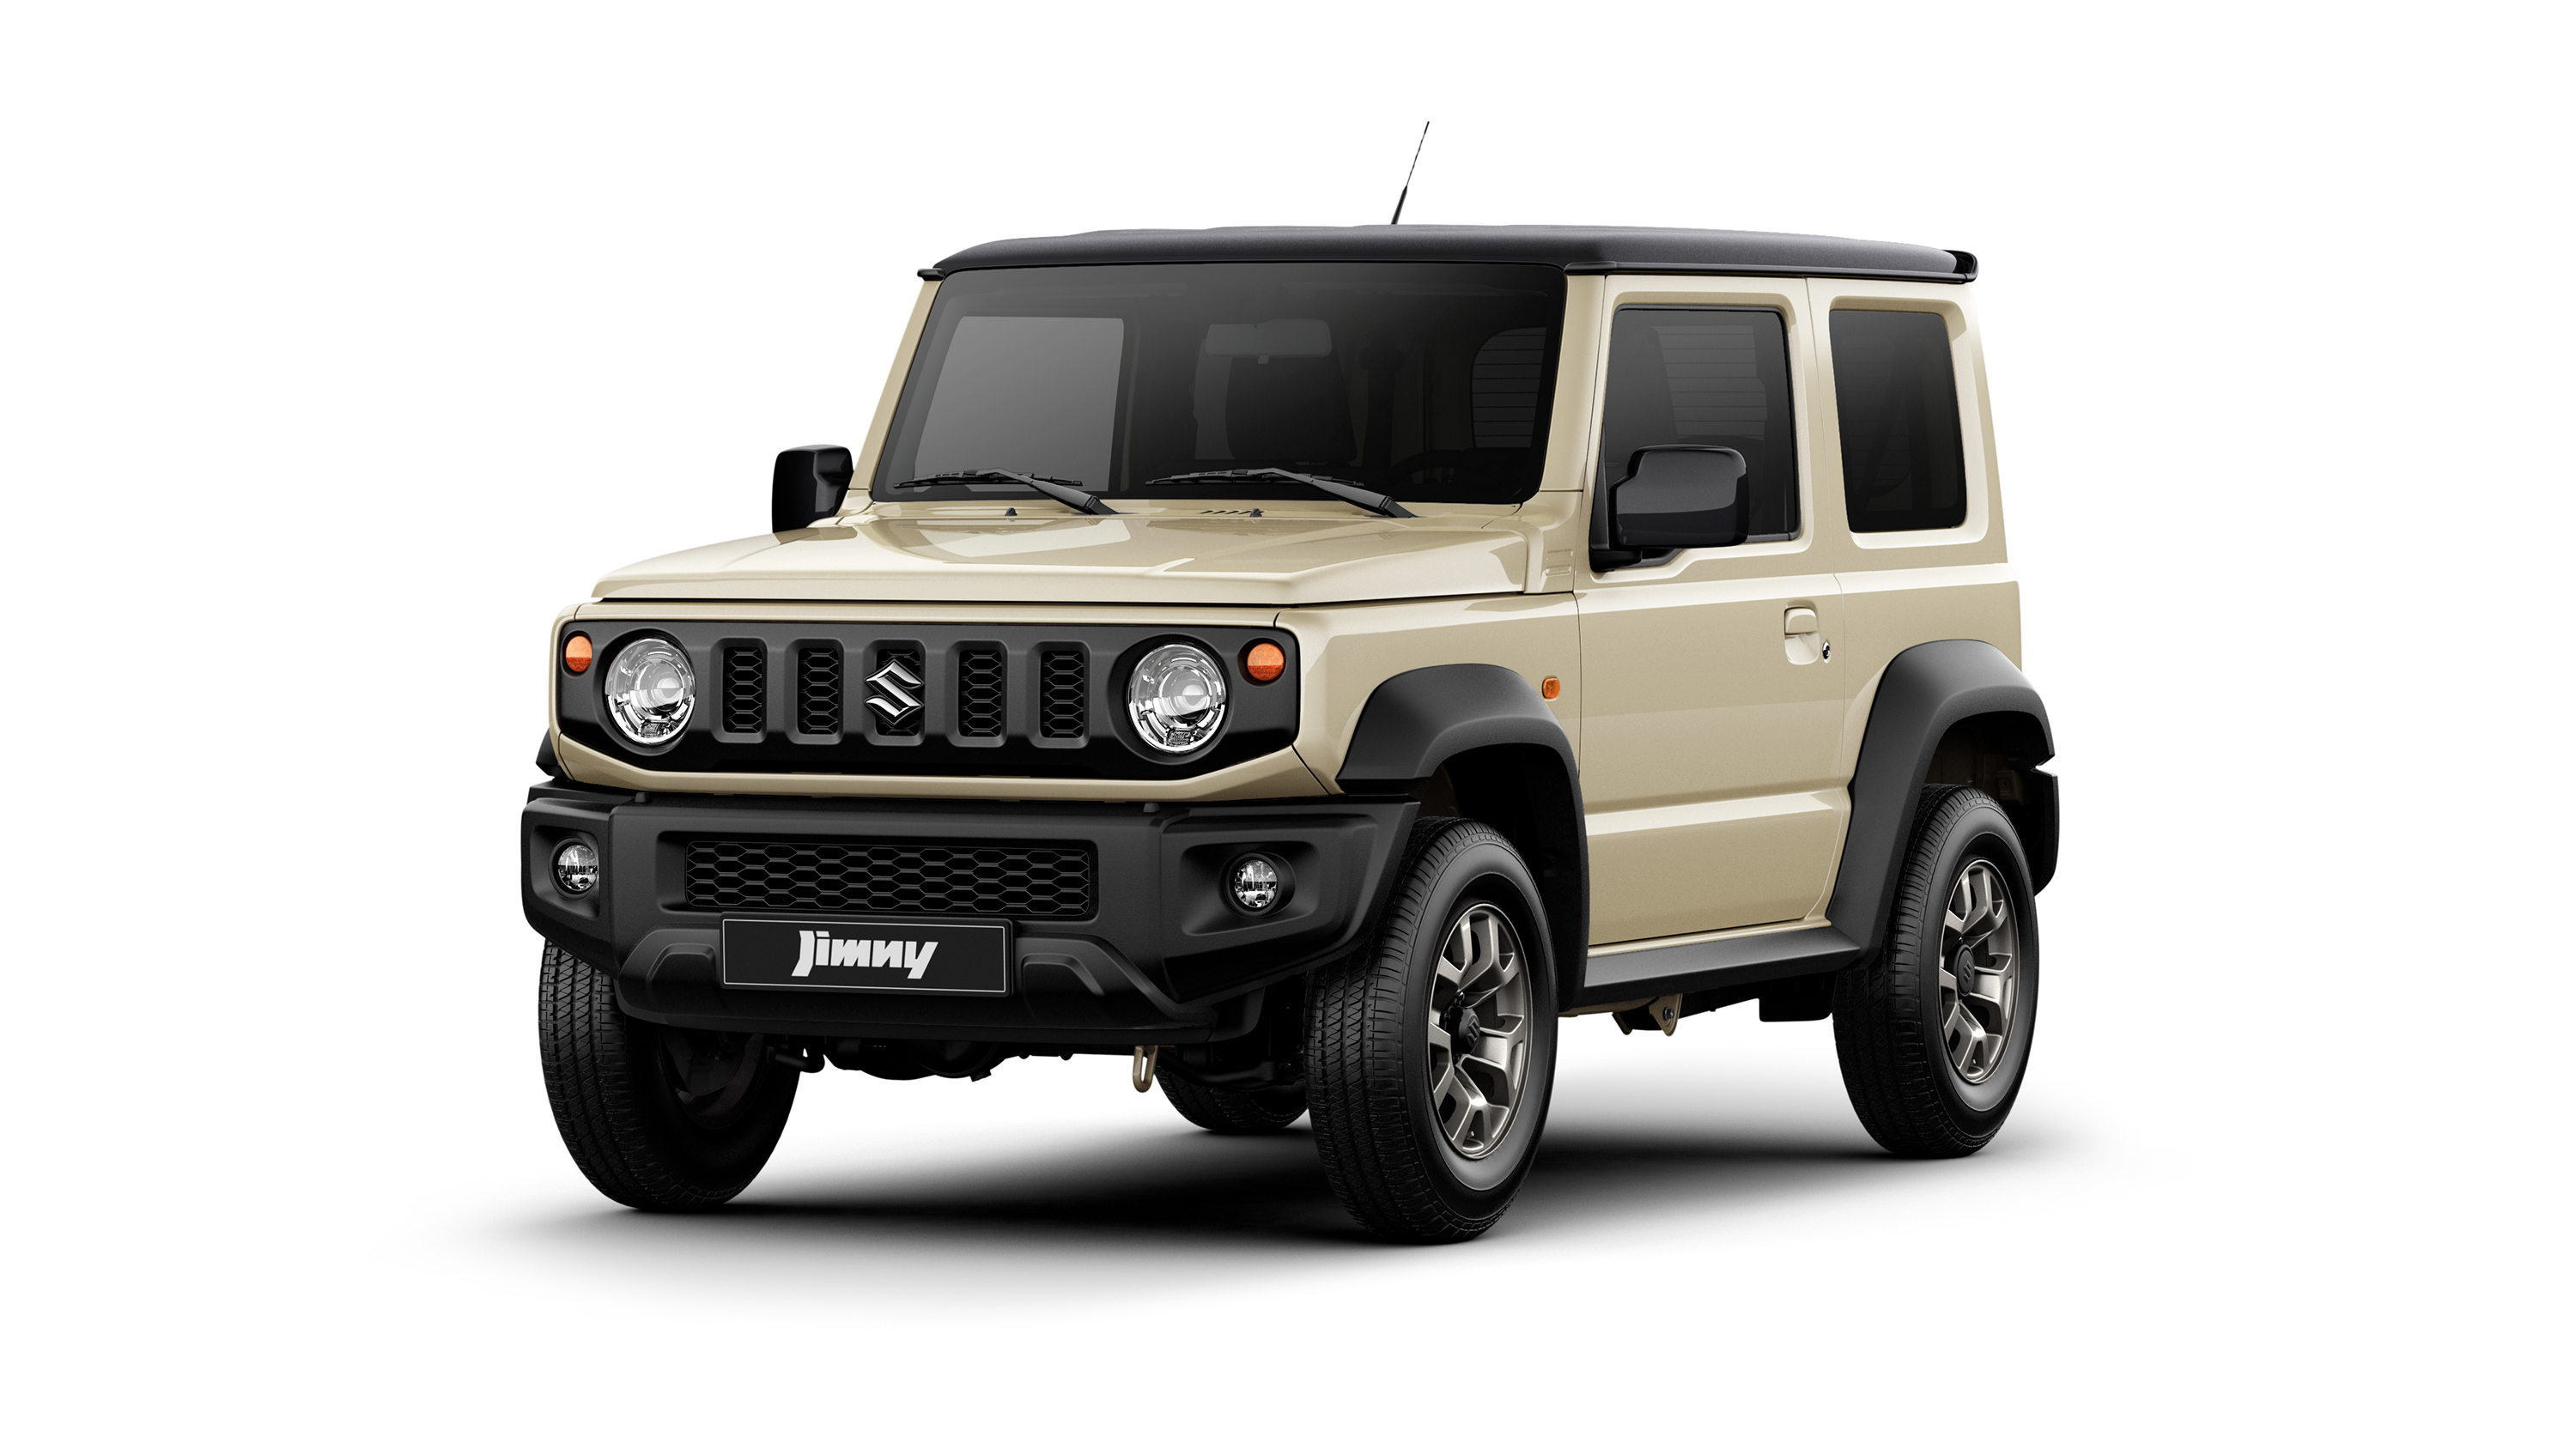 New Suzuki Jimny launched in Japan, to arrive in other markets soon